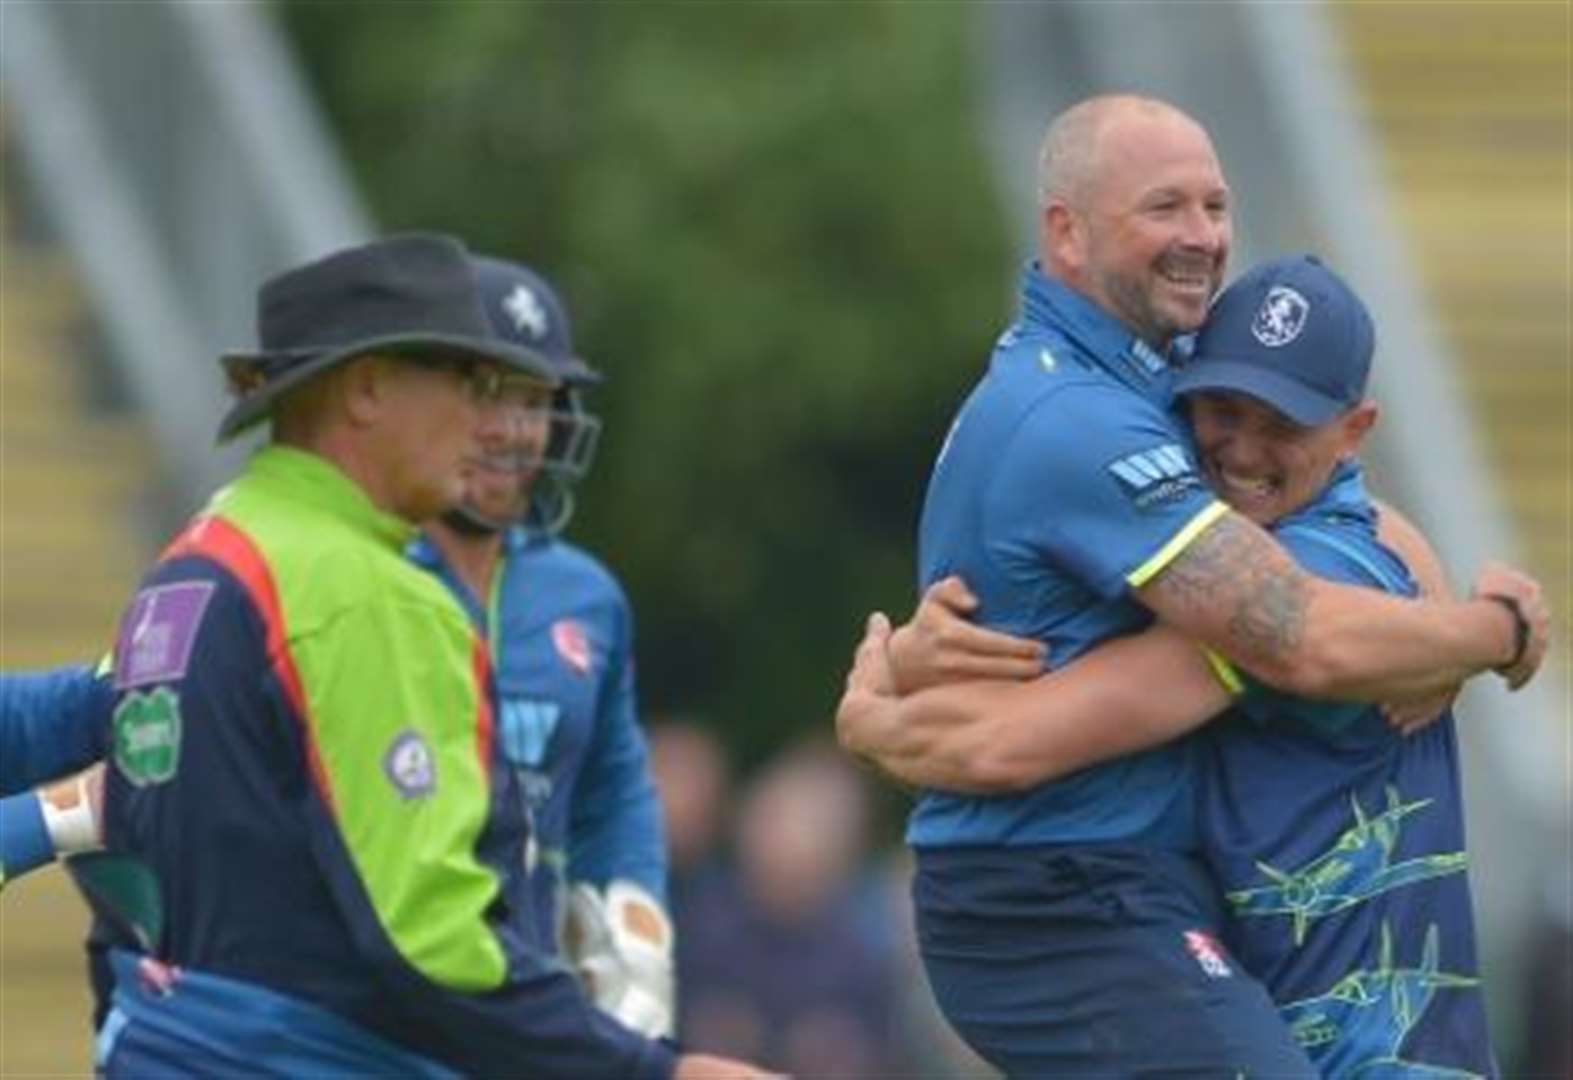 Kent Spitfires v Hampshire at Lord's - as it happened